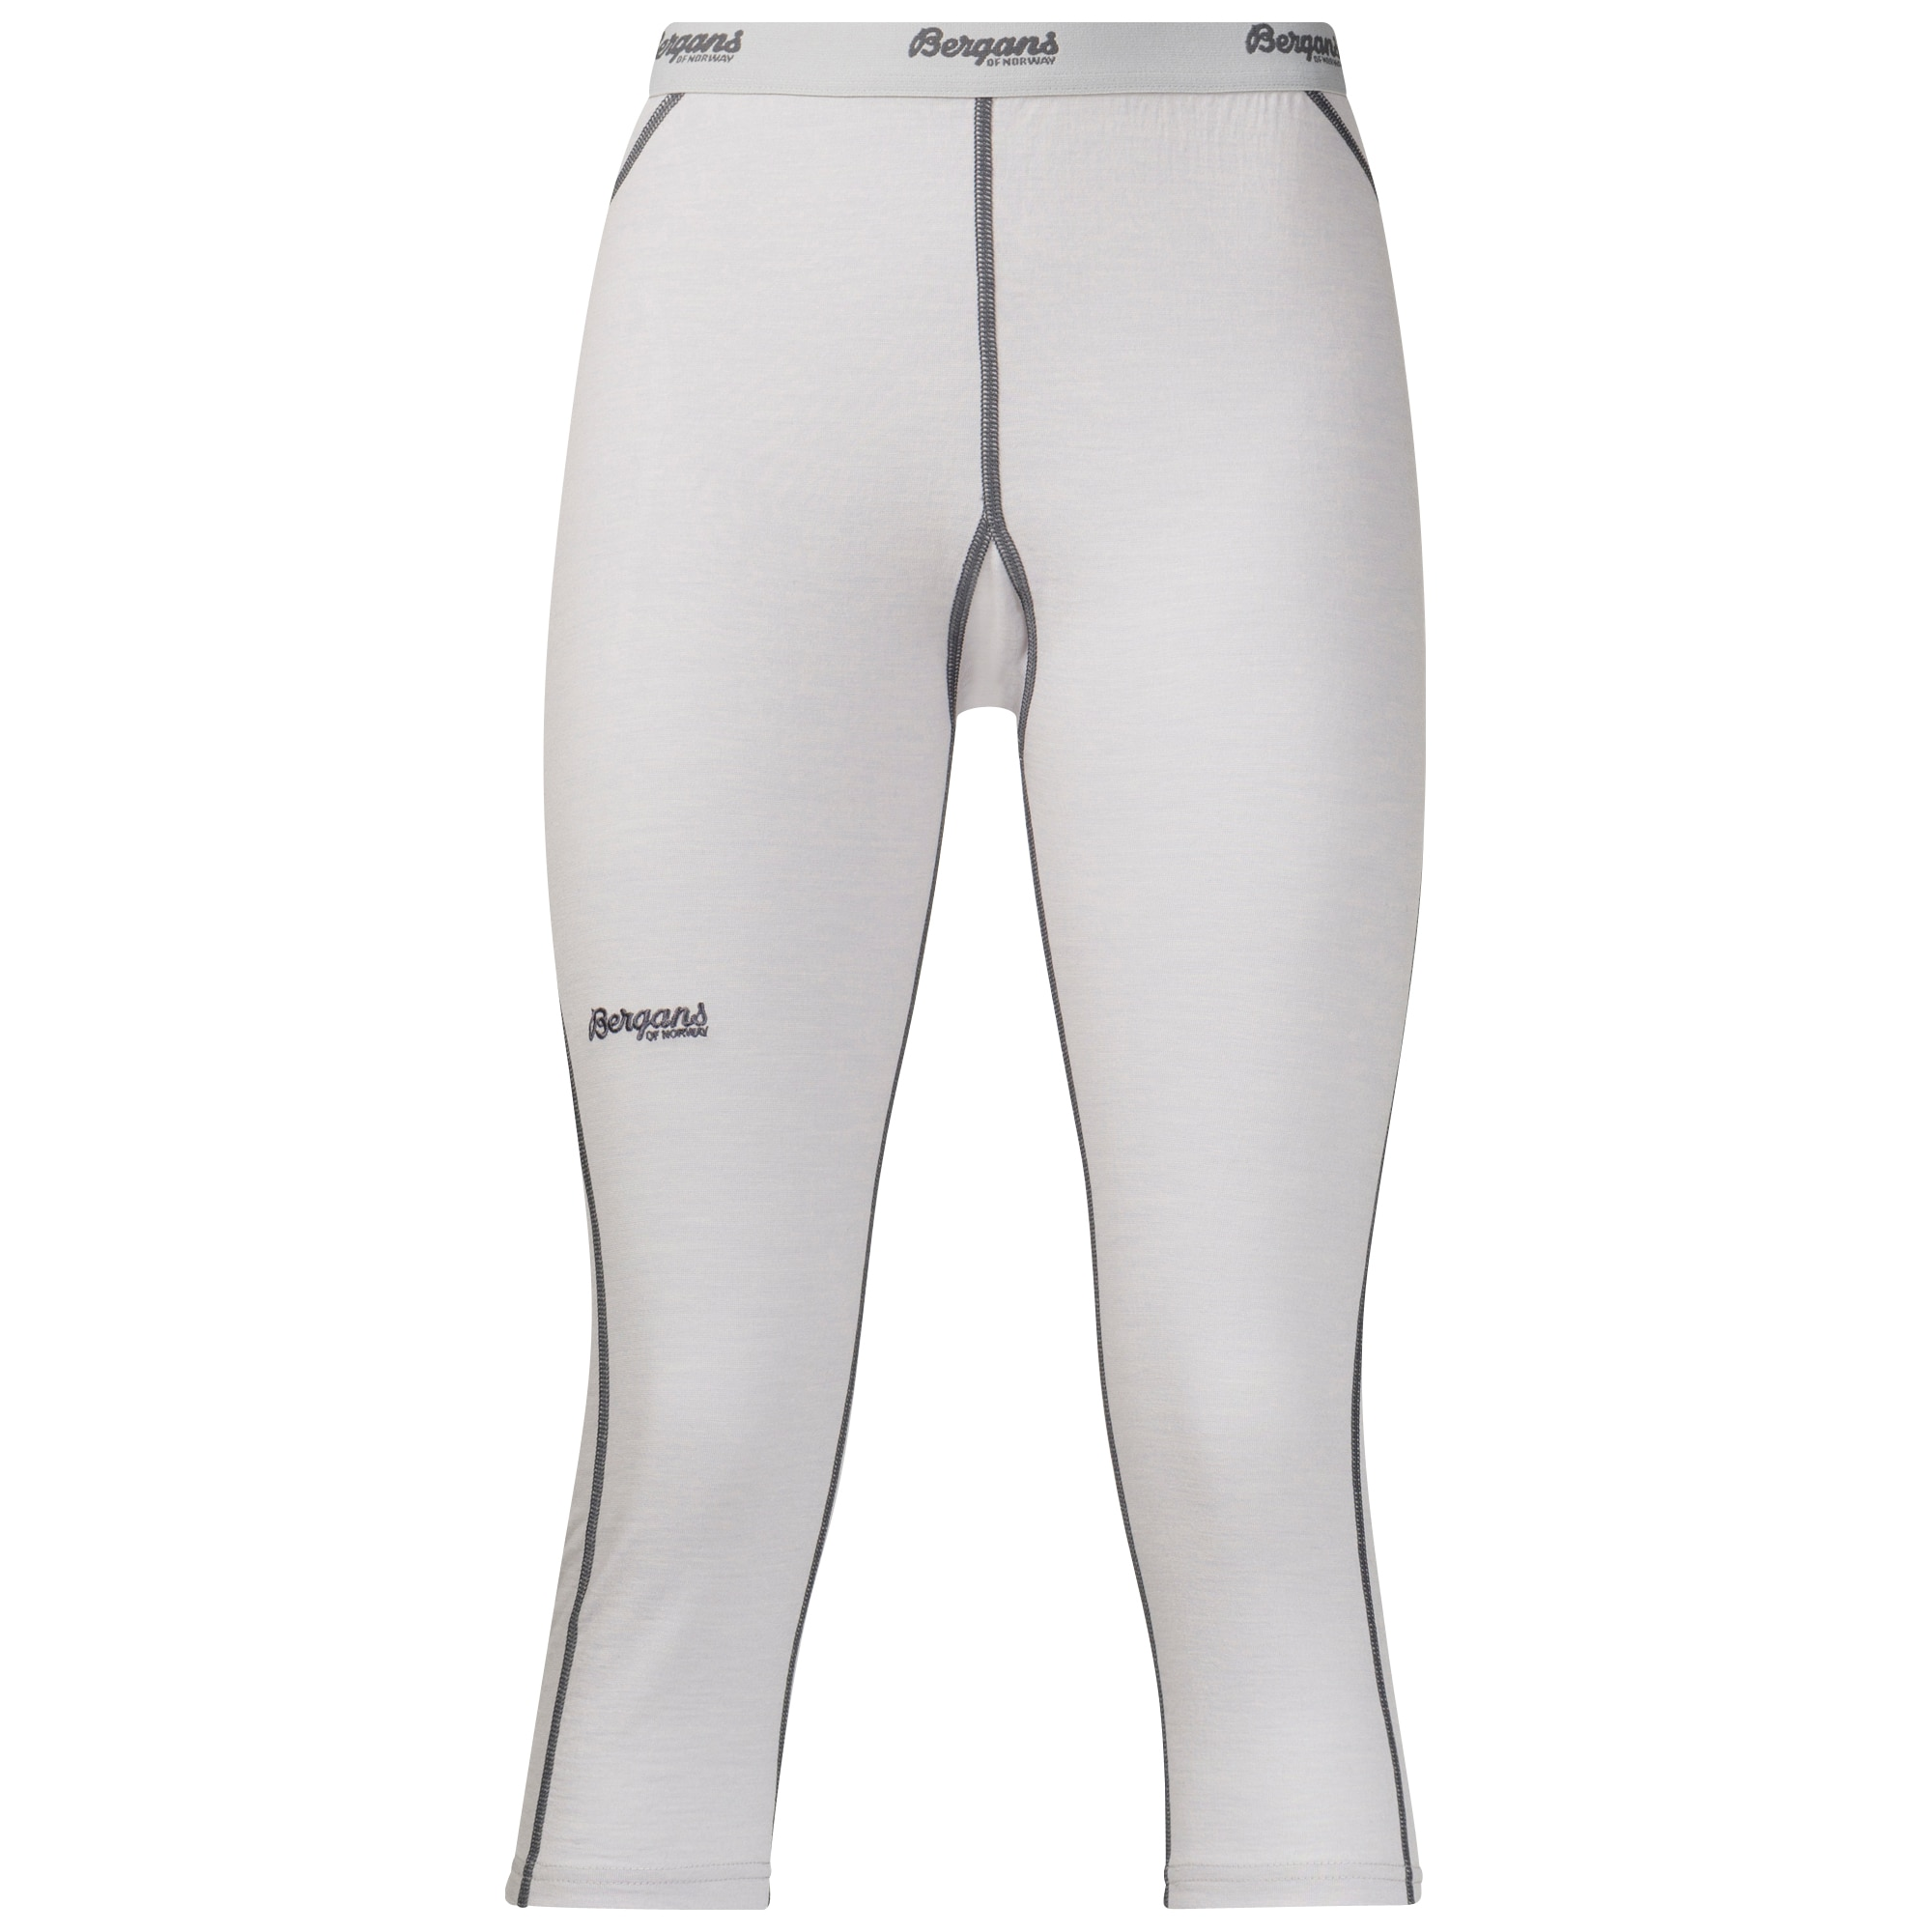 Fjellrapp Lady ¾ Tights